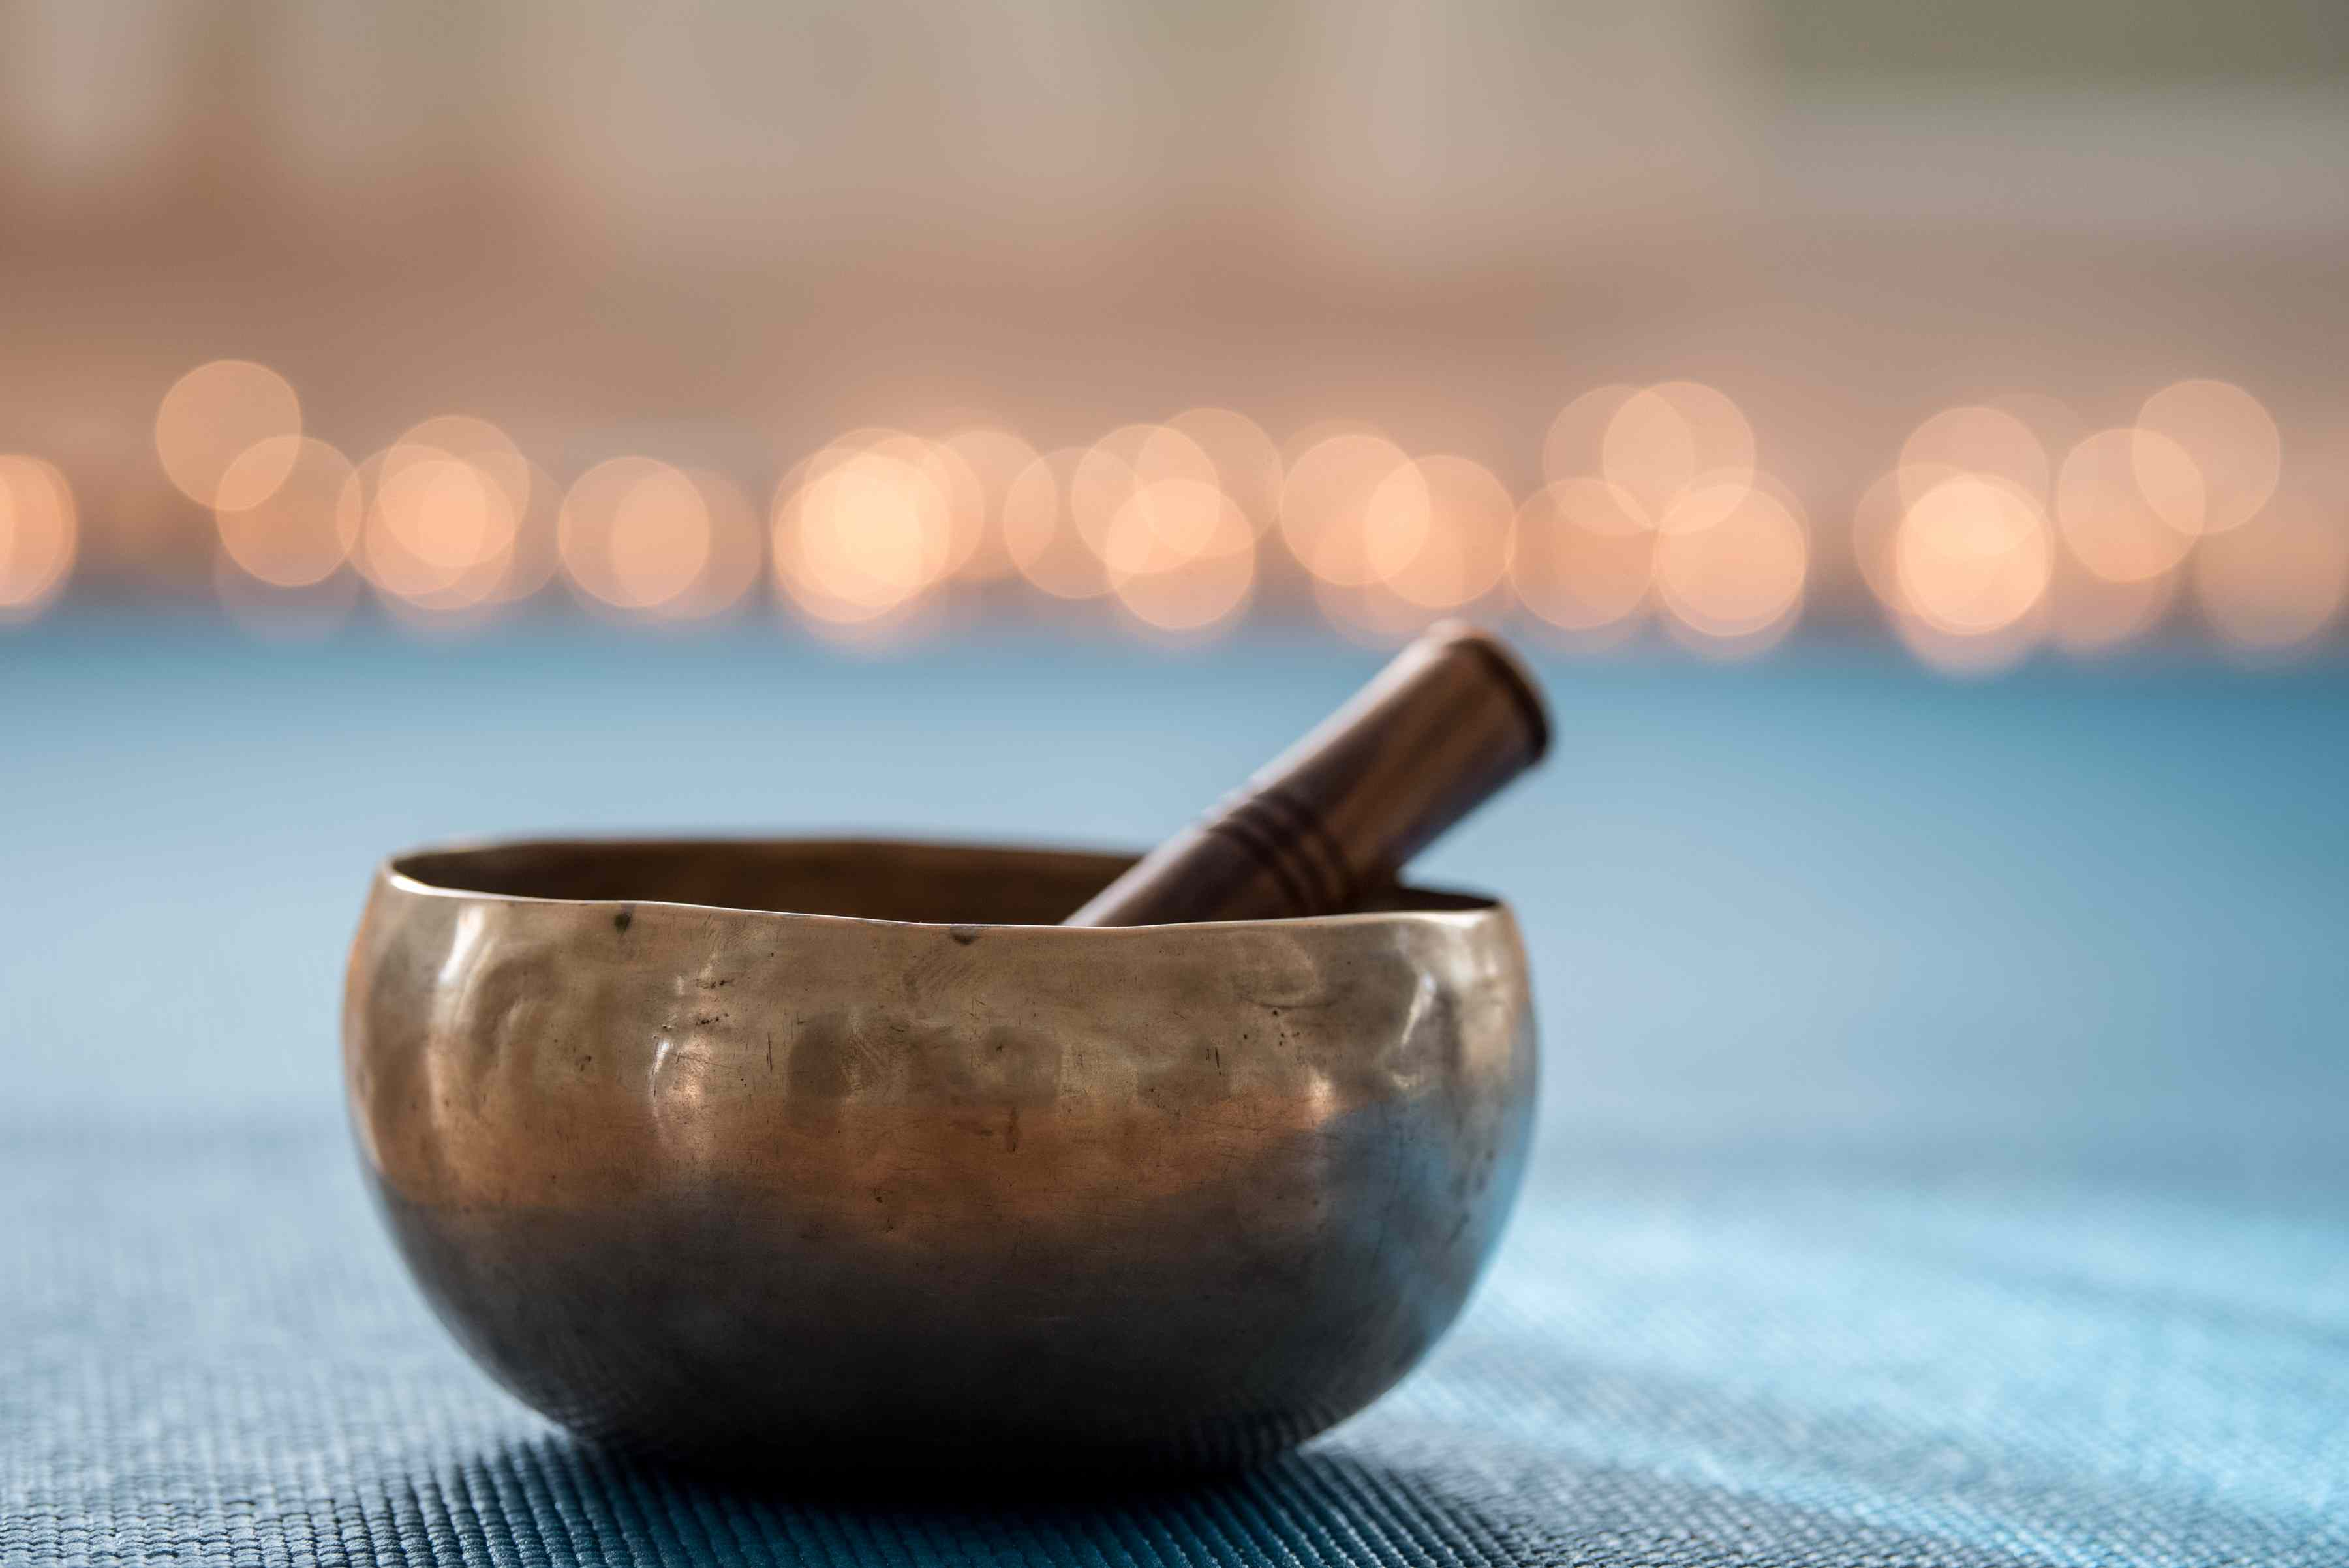 Tibetan singing bowl (musical instrument) on yoga mat with lights in background